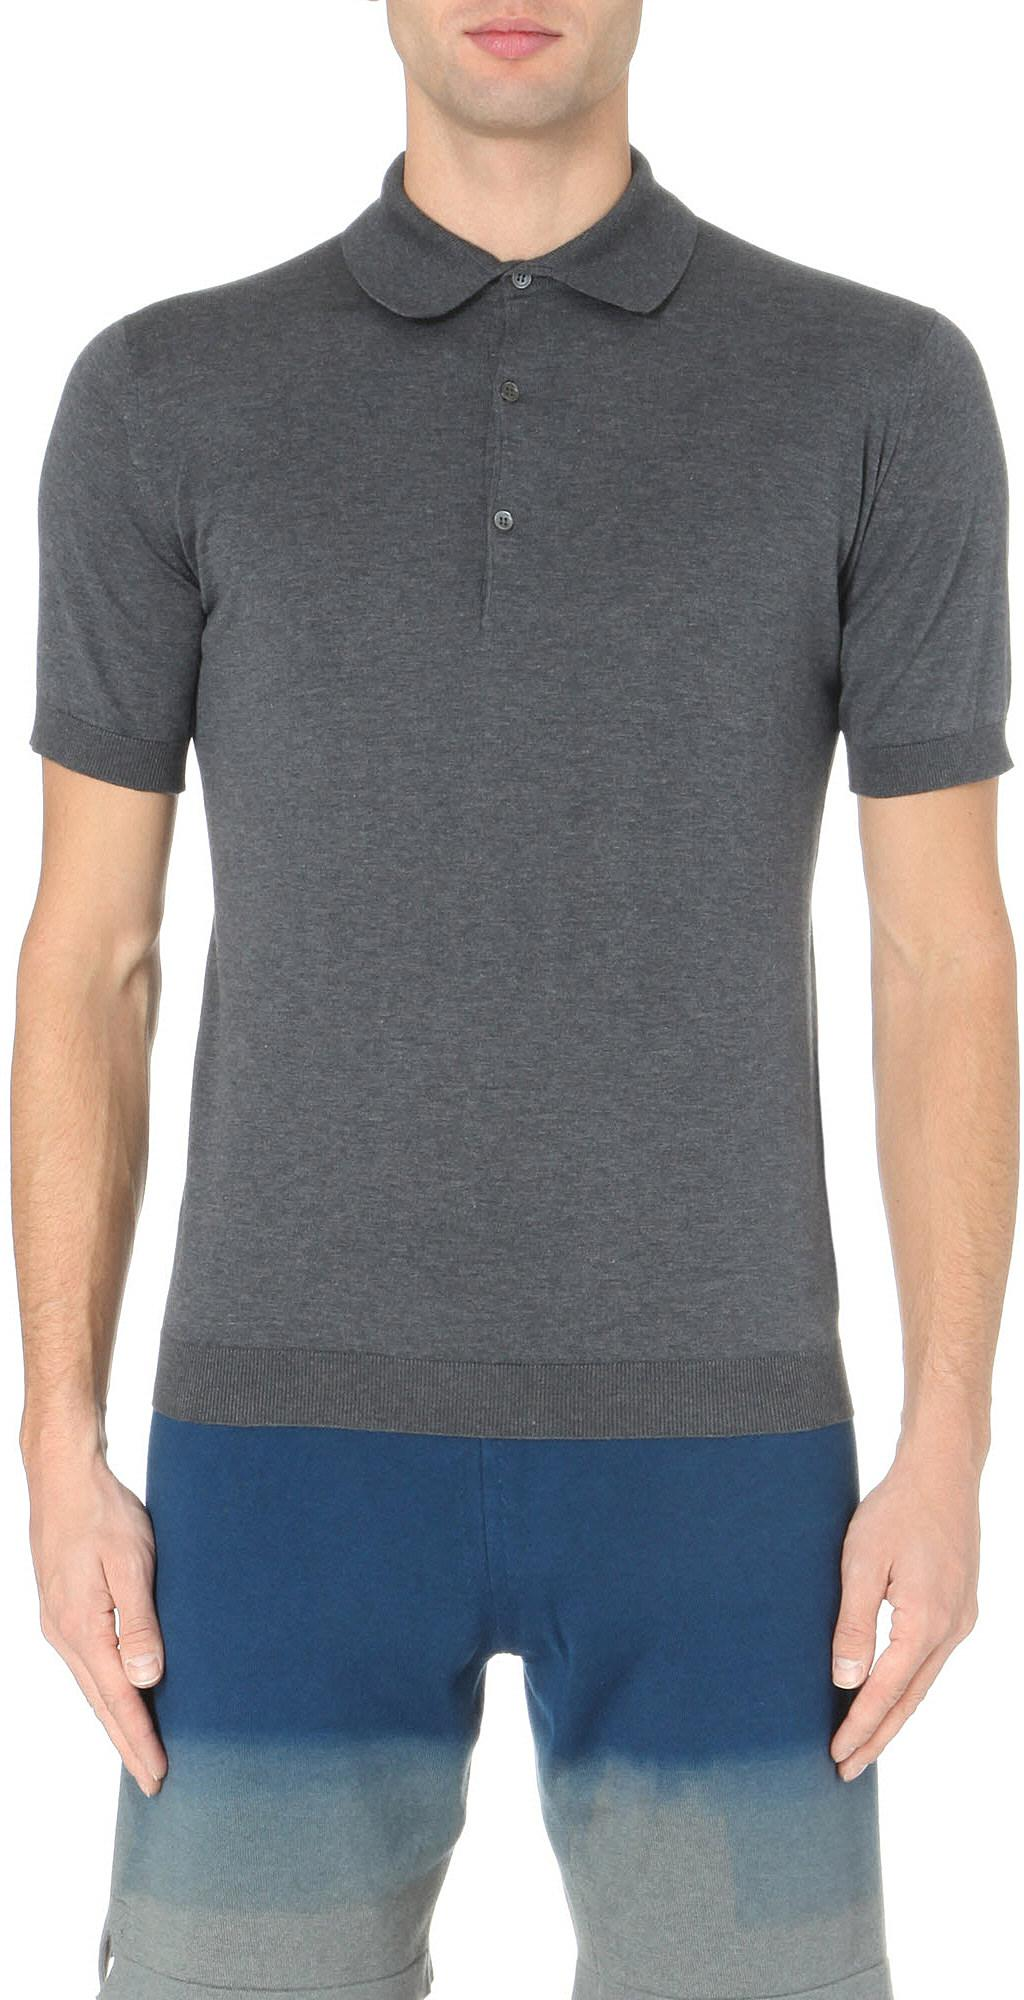 65acd4d6 Lyst - John Smedley Adrian Cotton Polo Shirt in Gray for Men - Save 9%